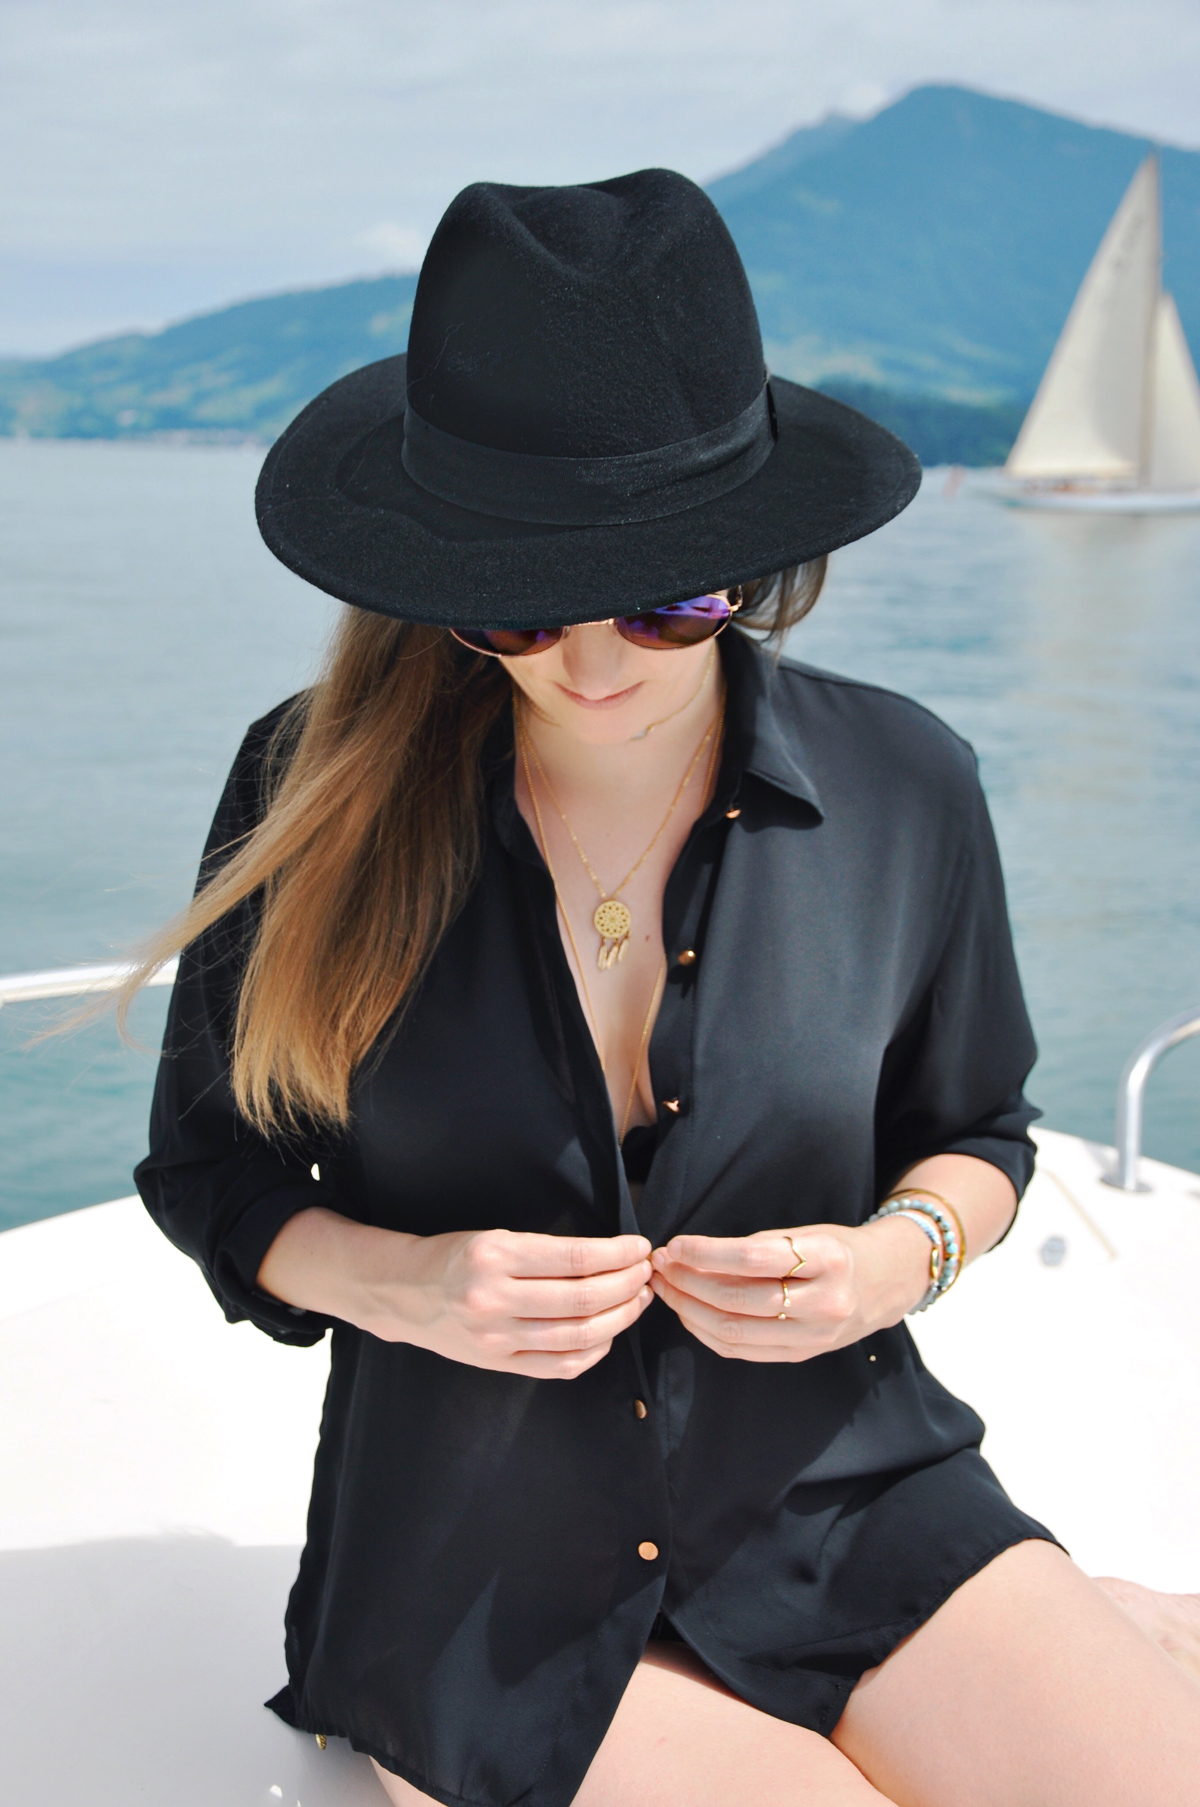 Fashionblogger, Andrea Steiner from Strawberries 'n' Champagne is wearing jewelry from NK Design in Zurich for a summer day. Combined with a blouse form H&M and Hat with Sunglasses.